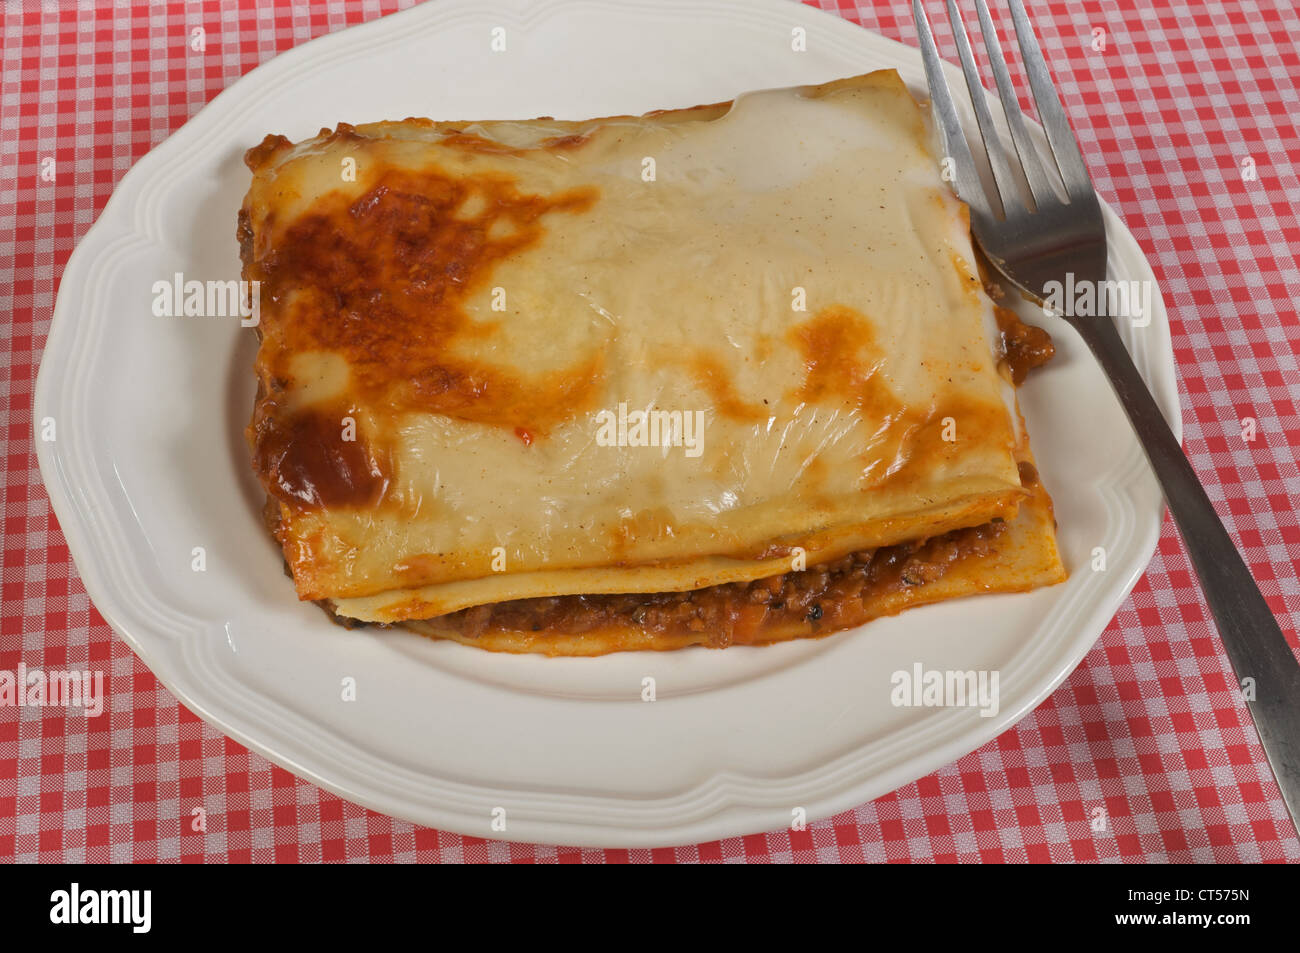 Sainsbury's low calorie beef lasagne - Stock Image